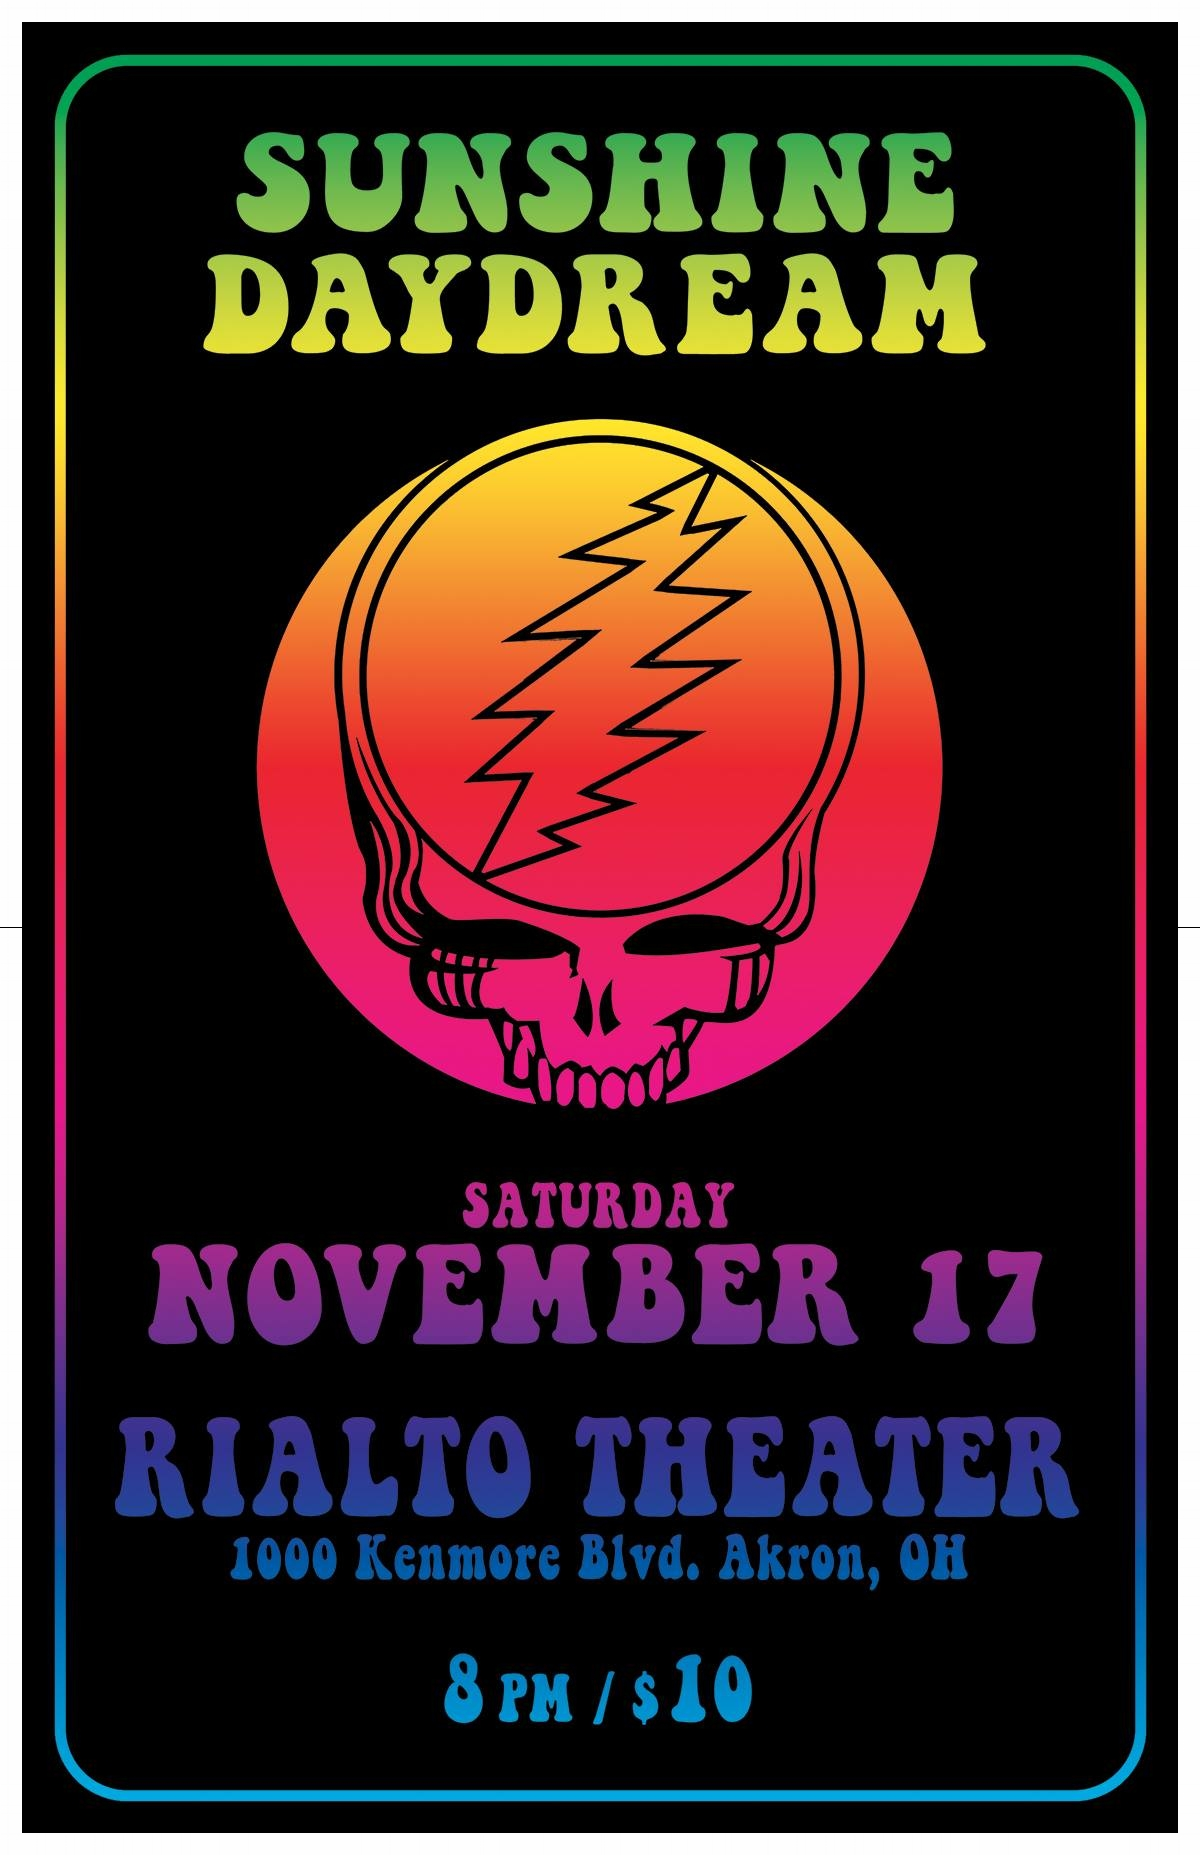 Sunshine Daydream honors the music of the Grateful Dead. Playing dead tunes from the best era!  Alfredo Guerrieri - Bass Fred Perez - Stable - Drums Chris Hanna - Keys Tom Prebish - Vocals / Guitar Thor Platter - Vocals / Guitar